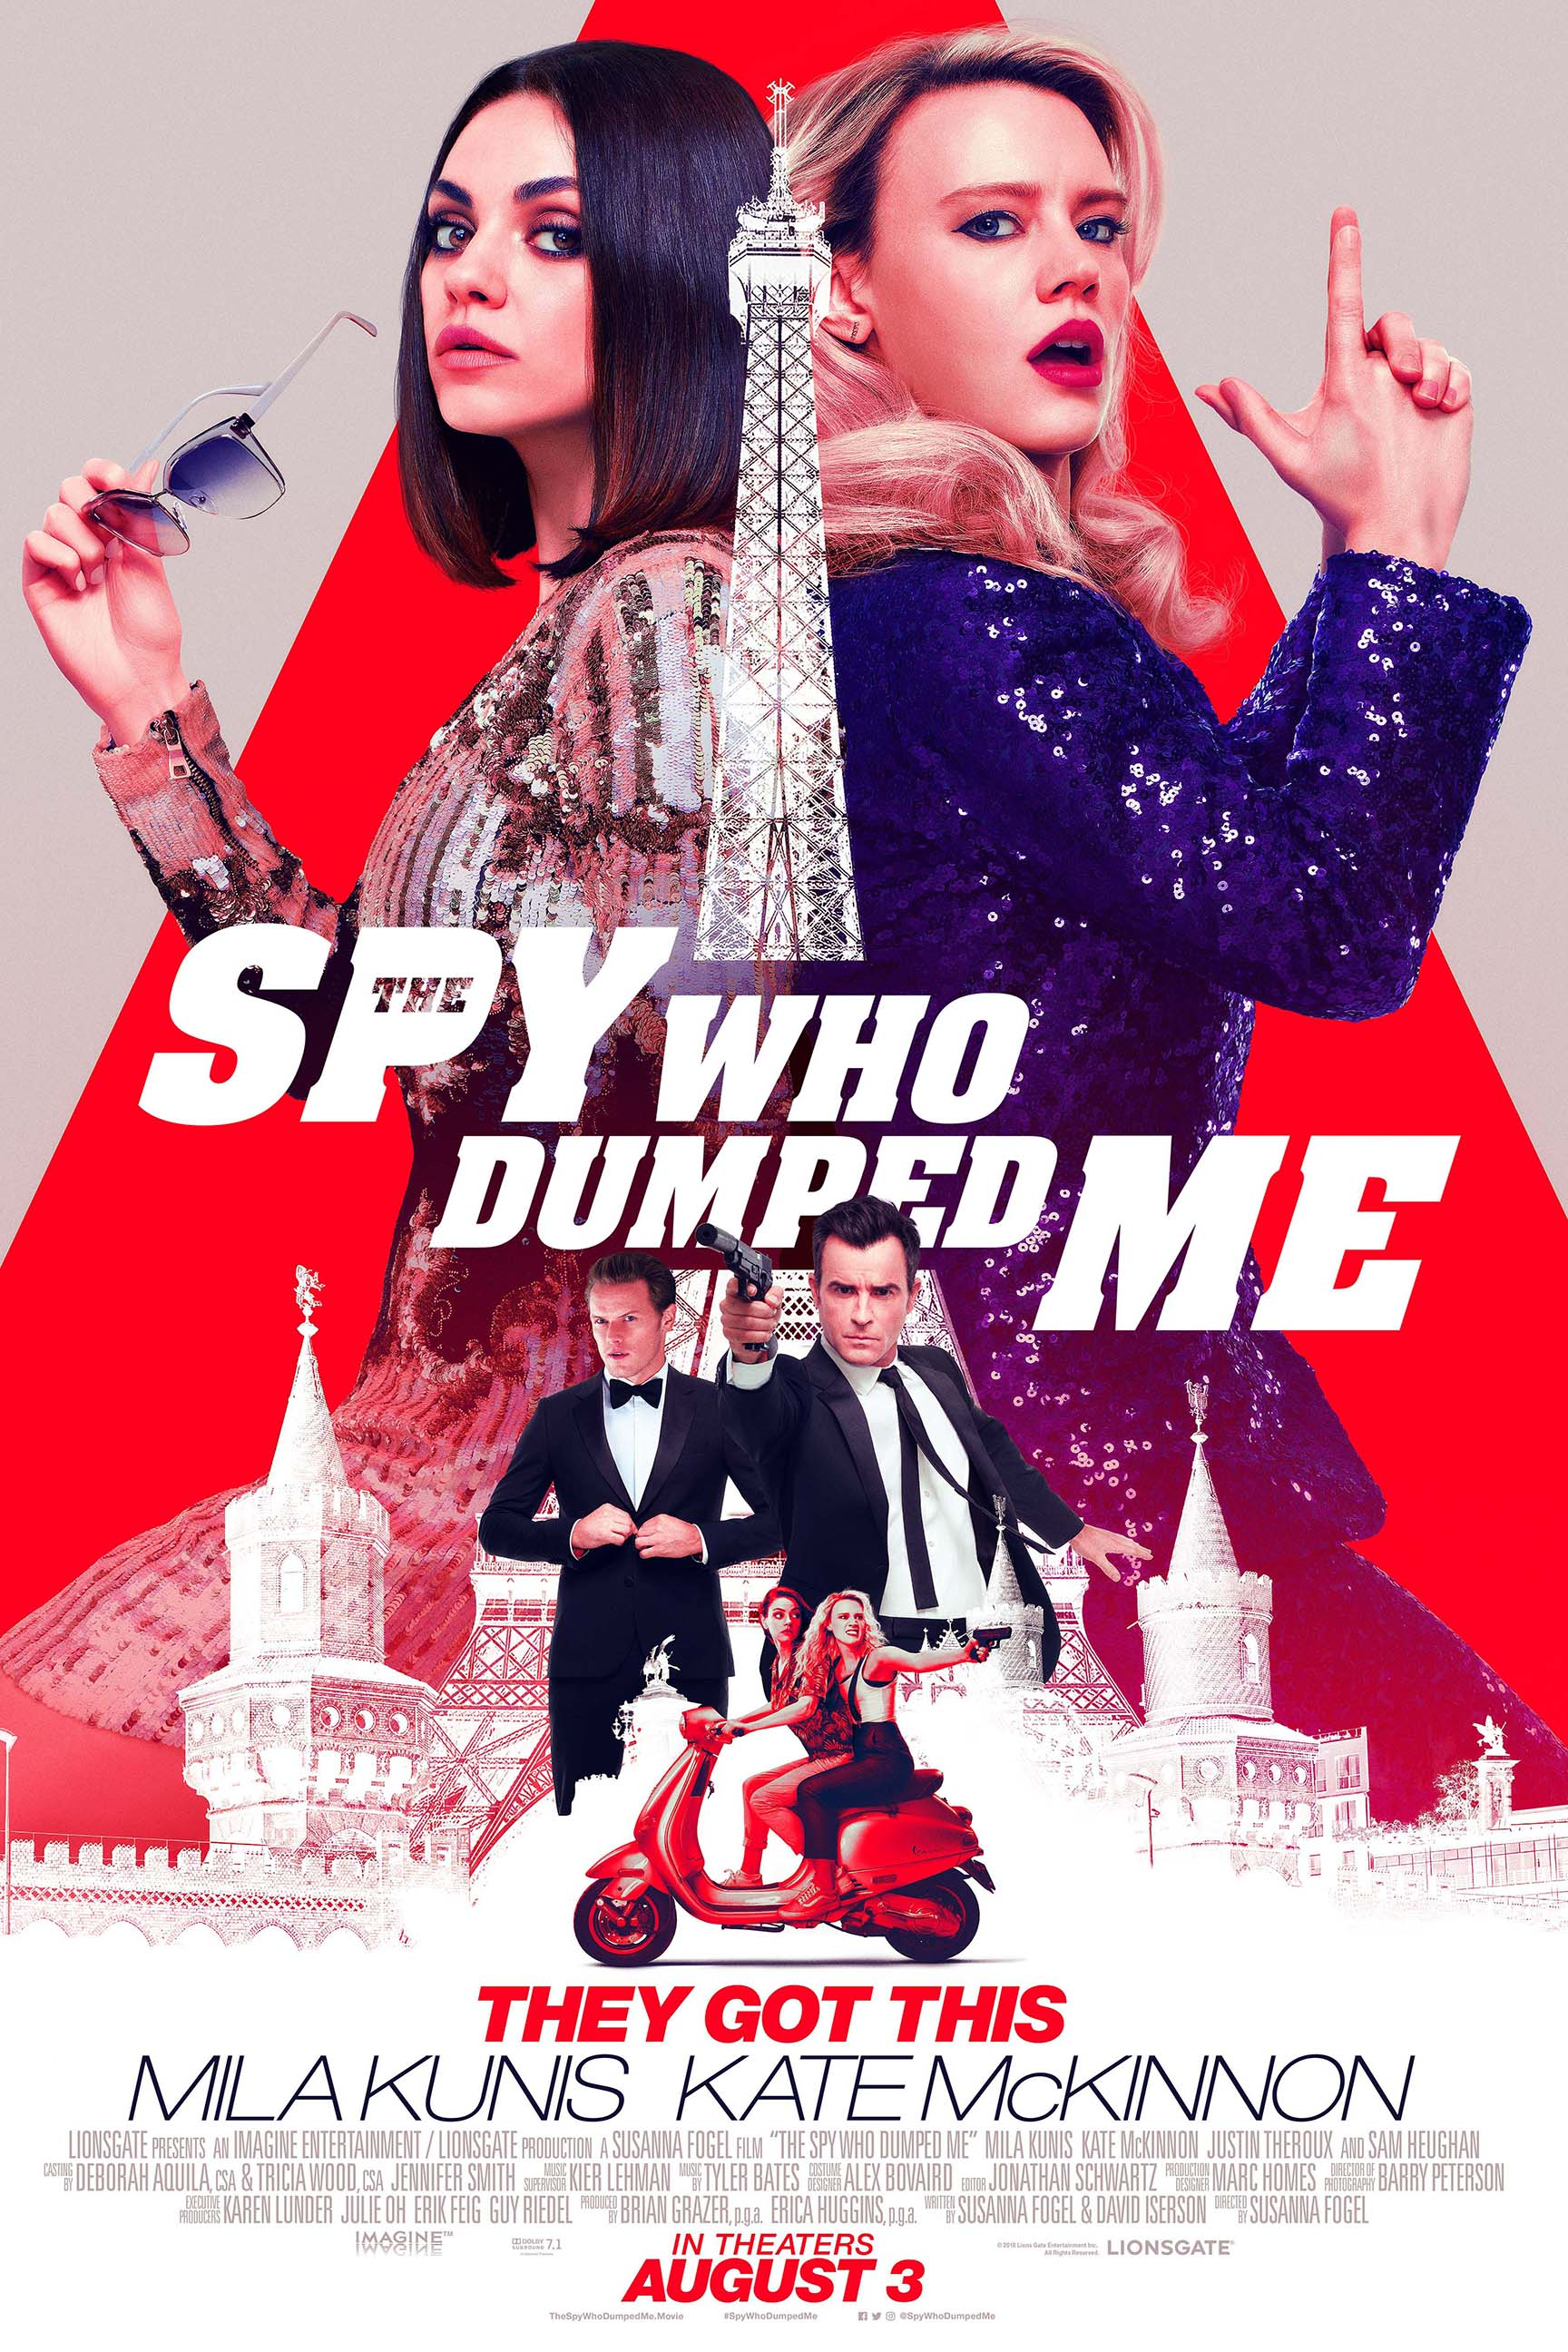 The Spy Who Dumped Me Sneak Preview Poster